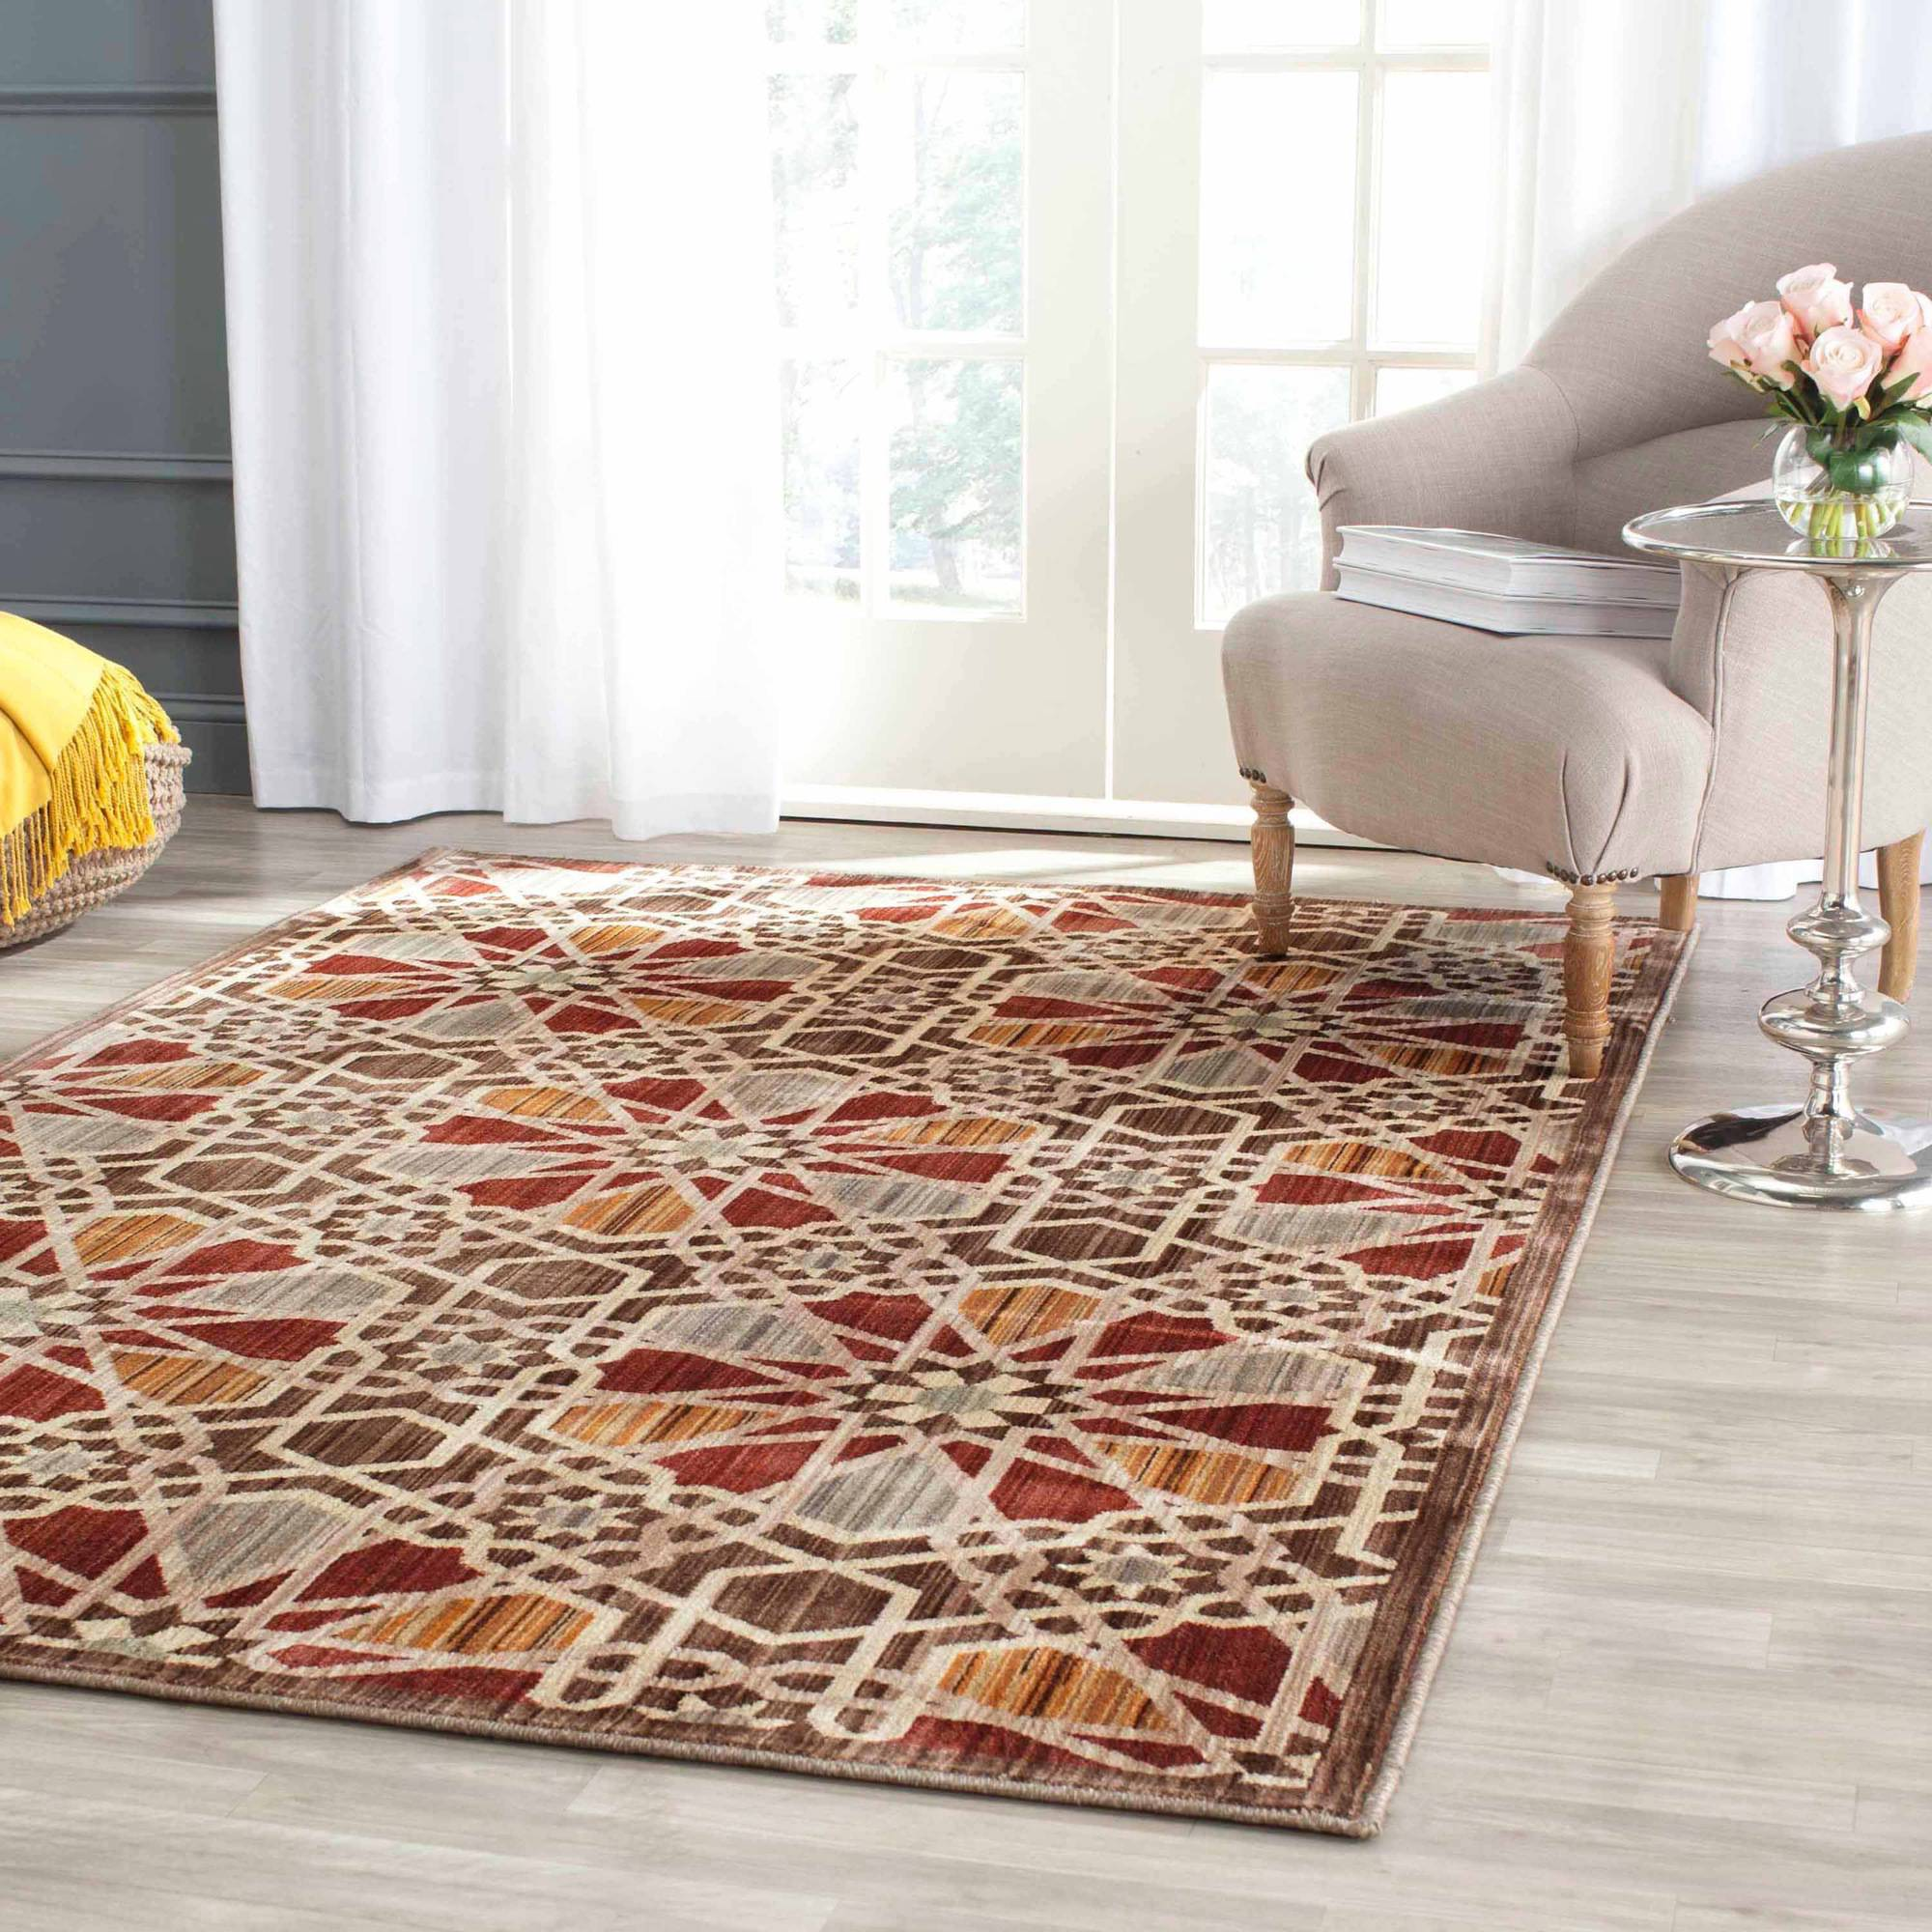 "Safavieh Infinity Cahal Power-Loomed Area Rug, 5'1"" x 7'6"", Brown/Beige"